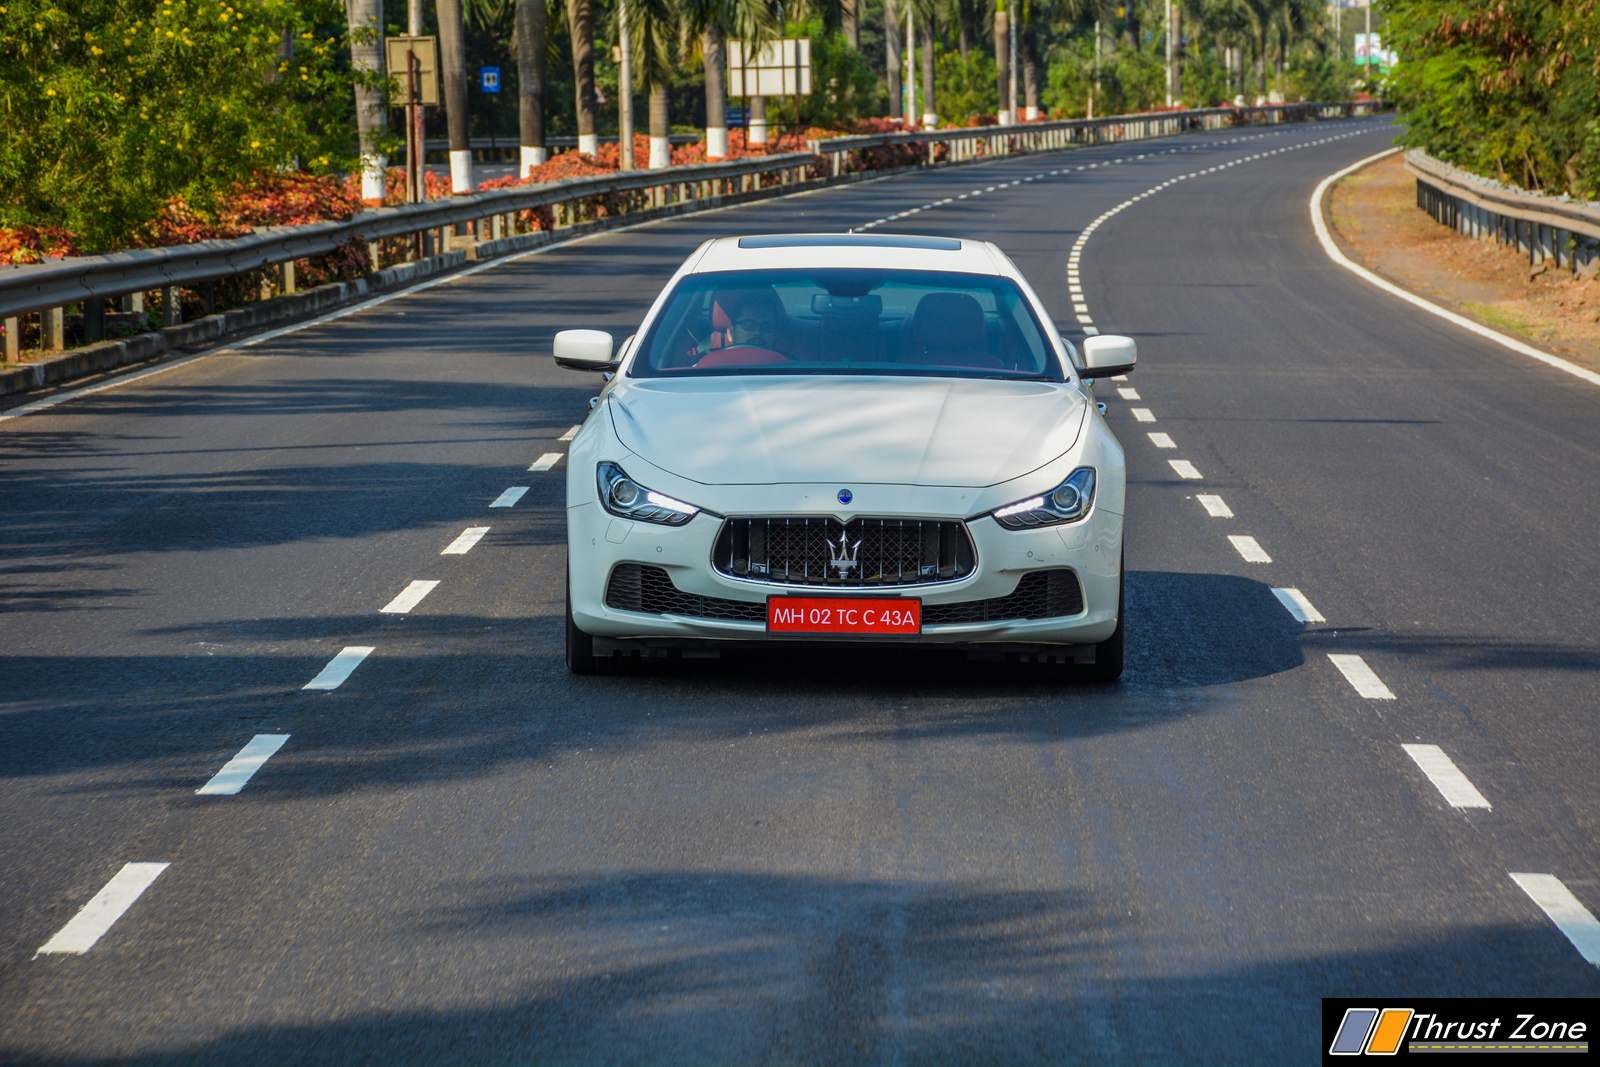 https://www.thrustzone.com/wp-content/uploads/2018/02/Maserati-Ghibli-India-diesel-review-11.jpg